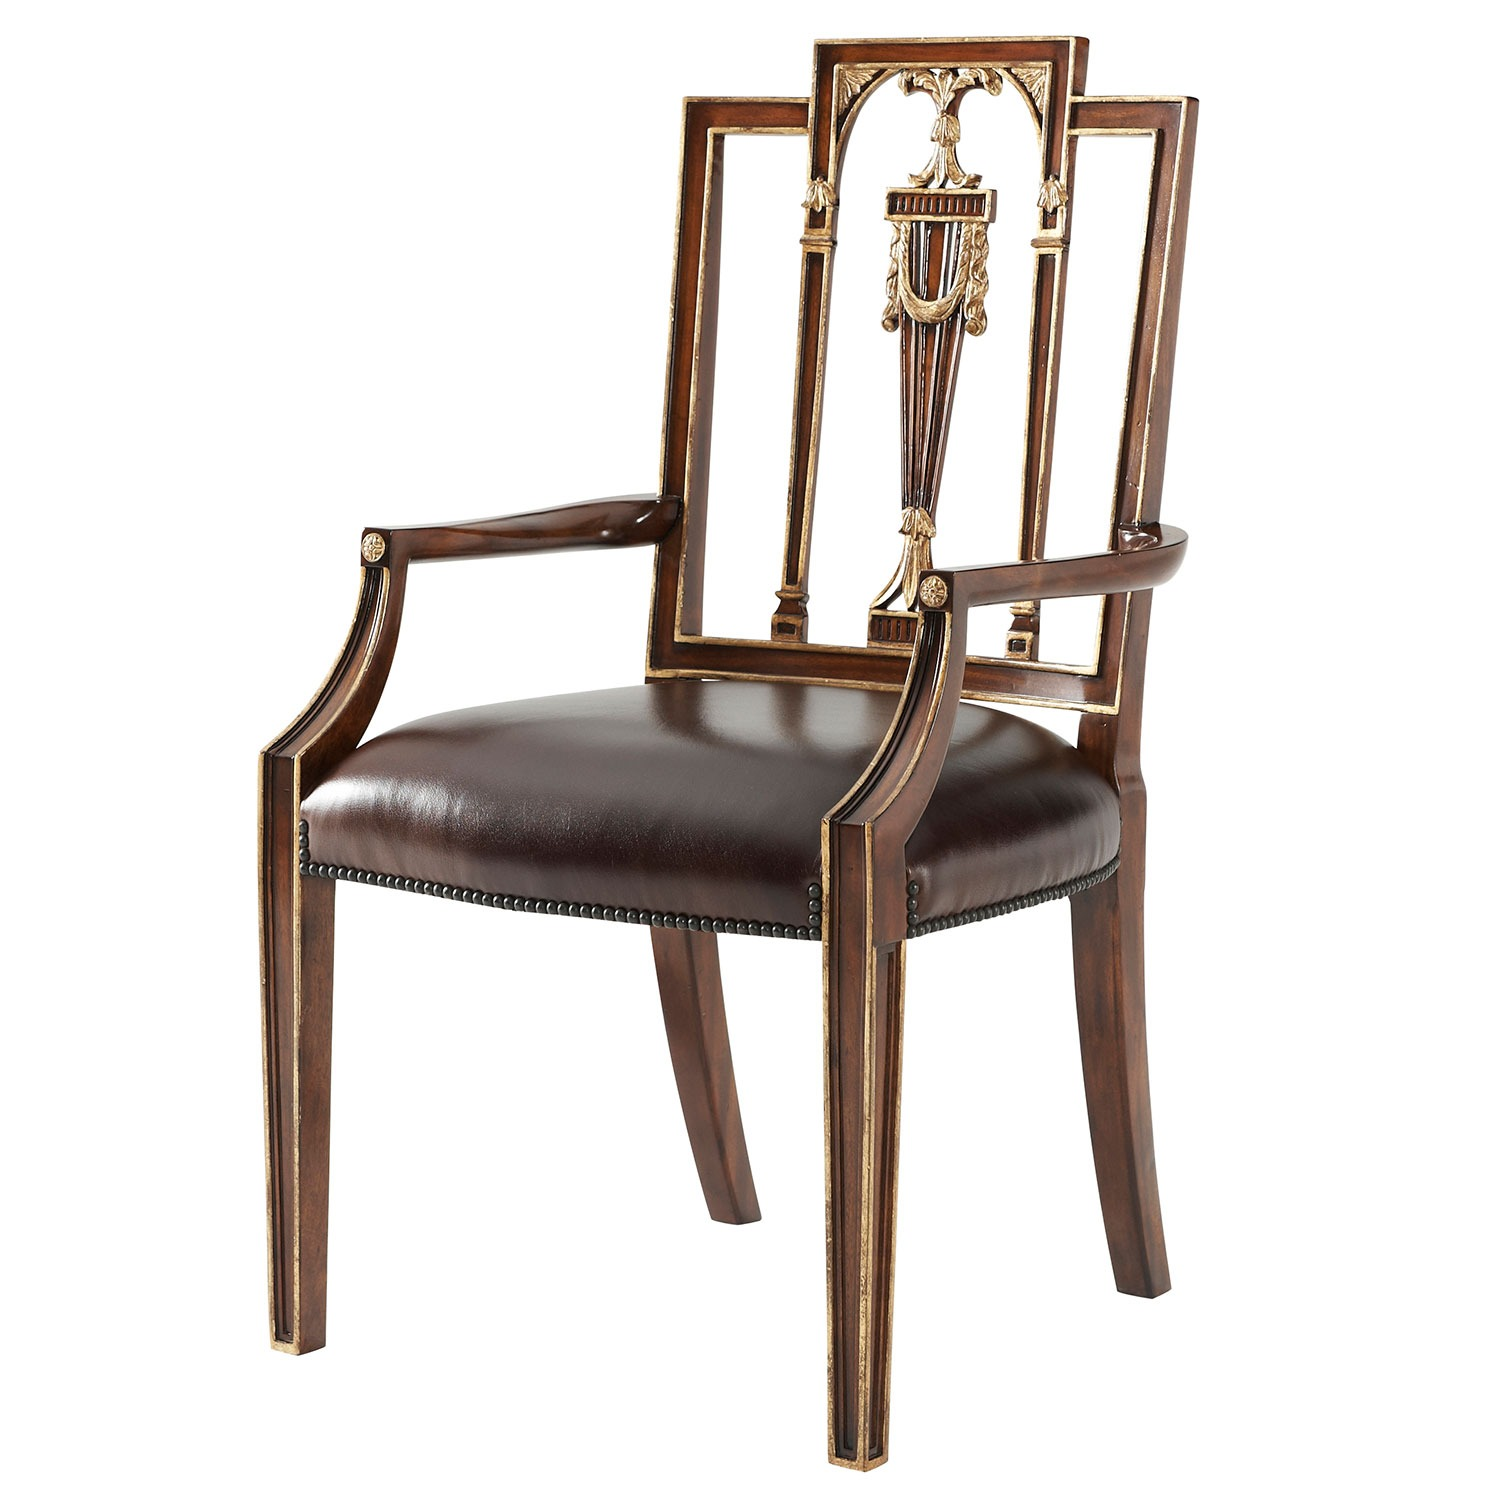 Neo-classical Arm Chair